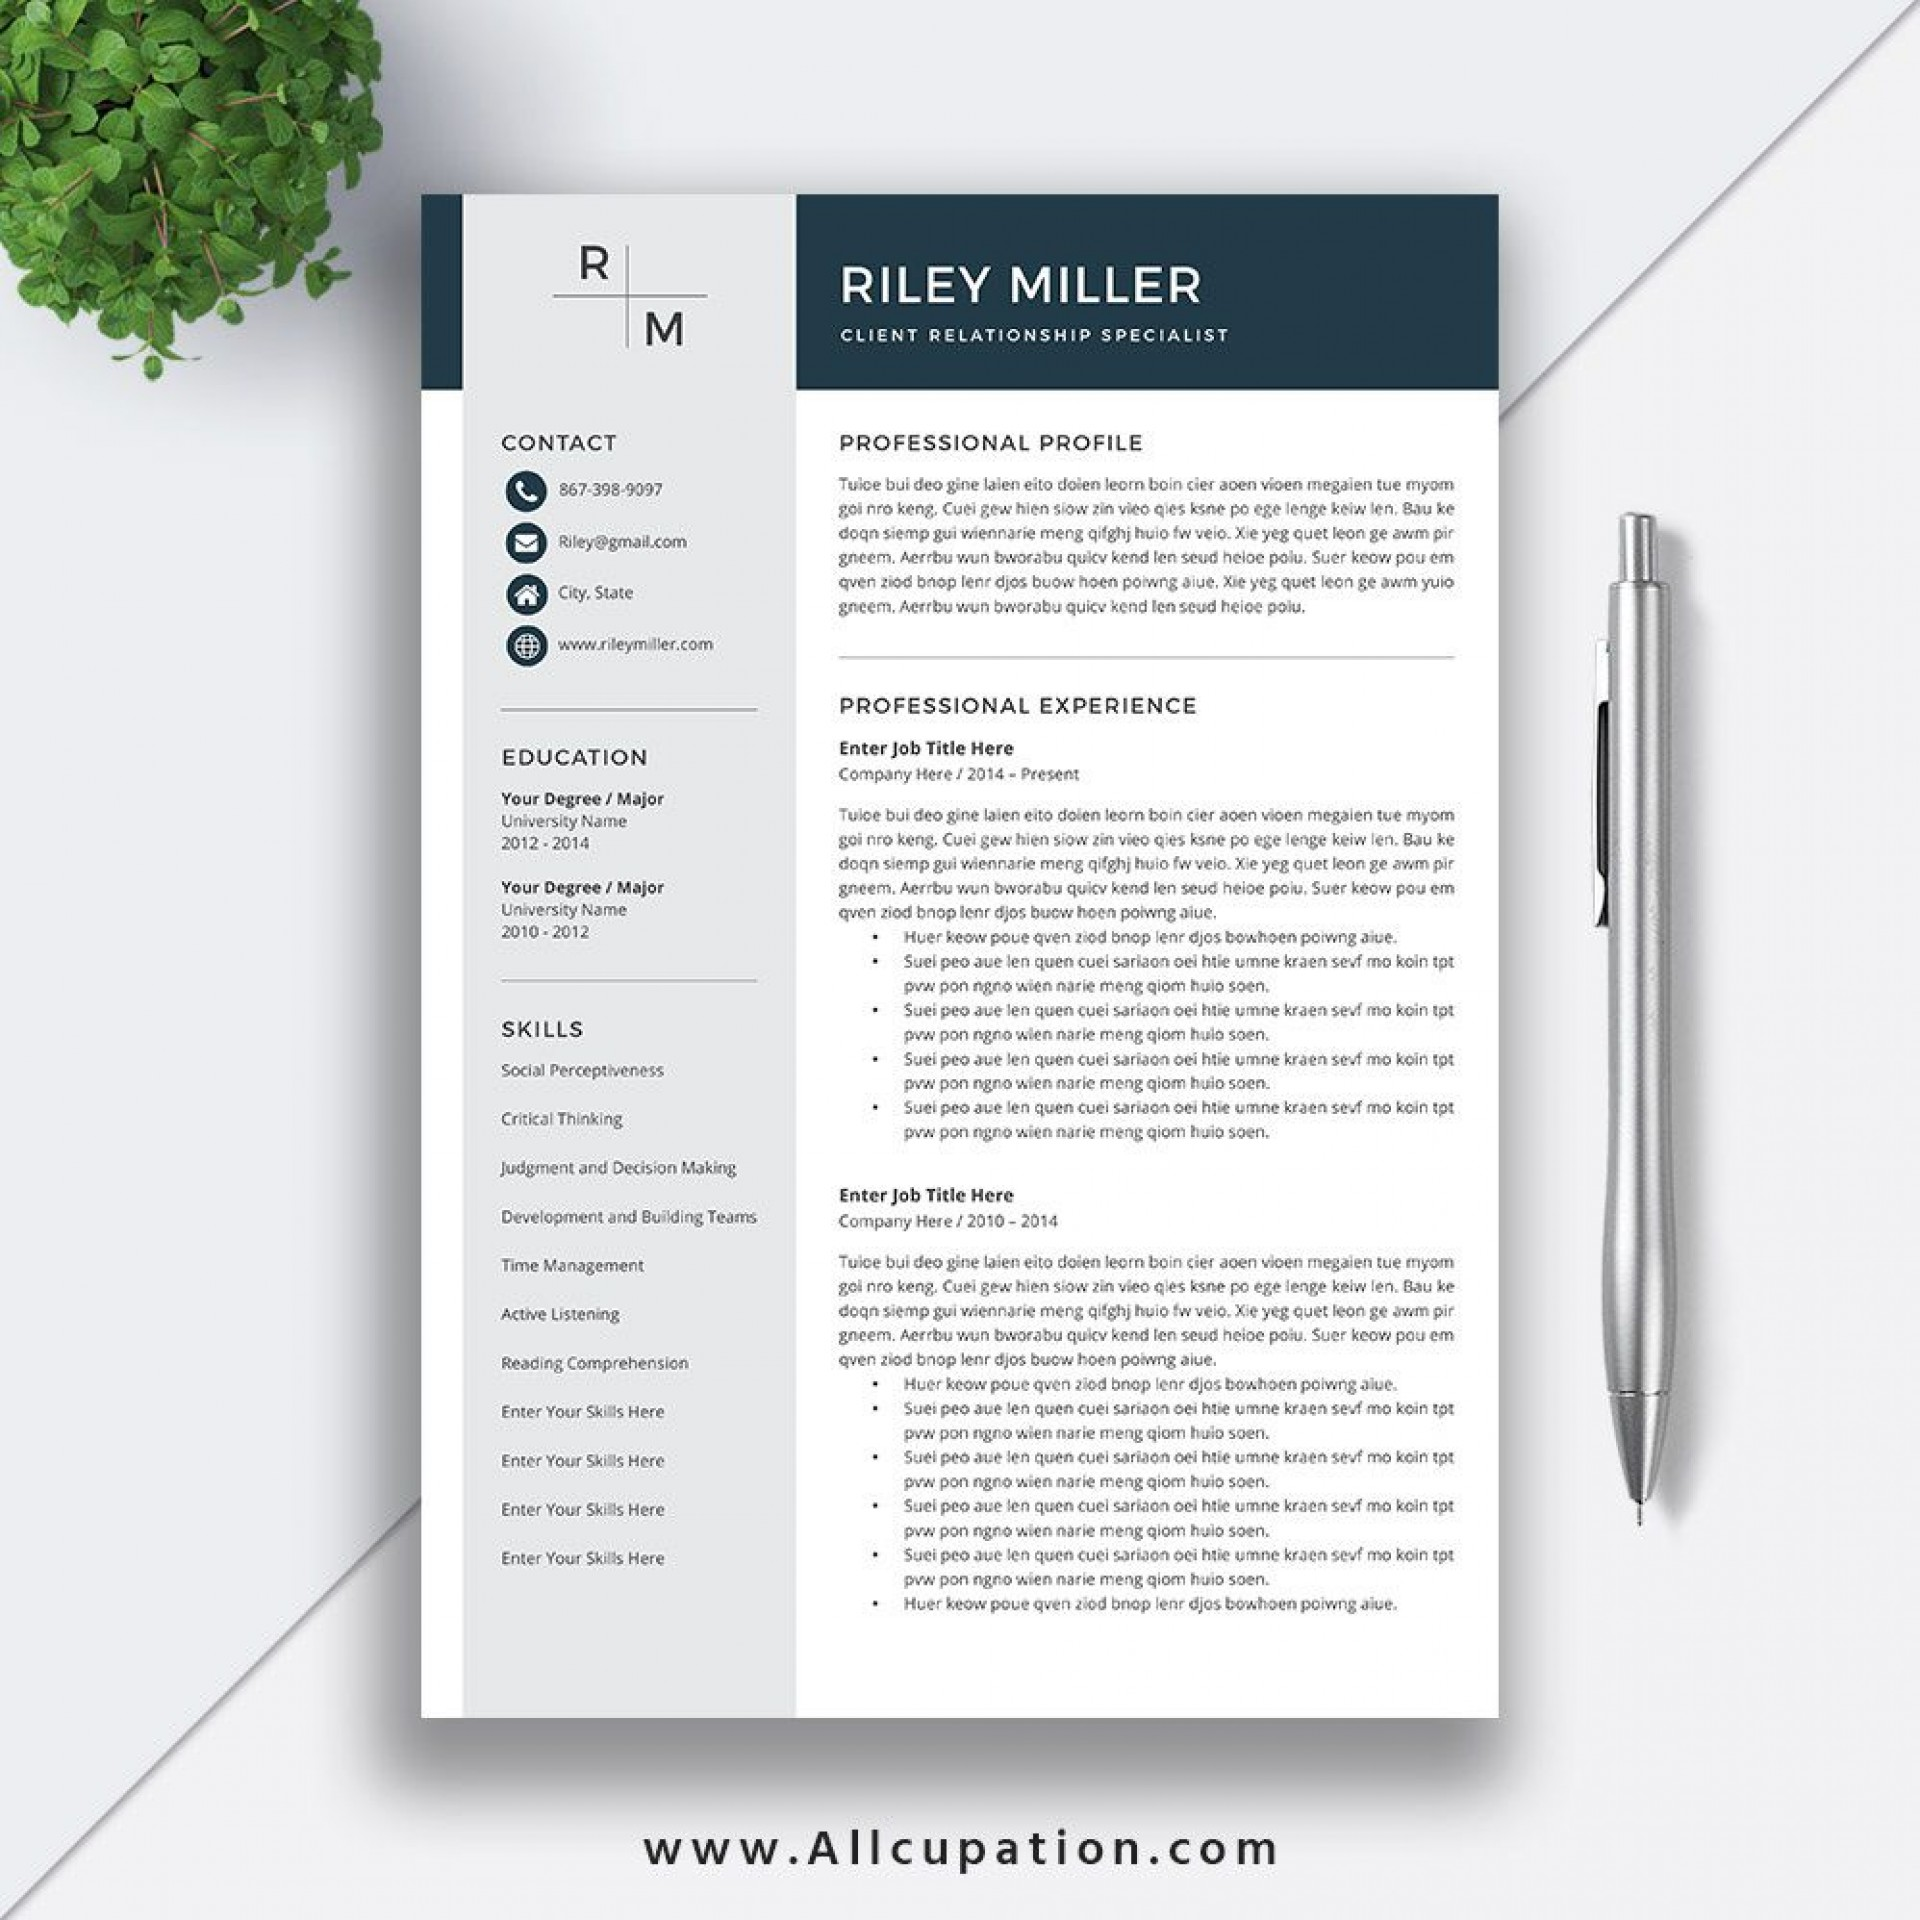 009 Fascinating Free Resume Template Microsoft Office Word 2007 High Definition 1920